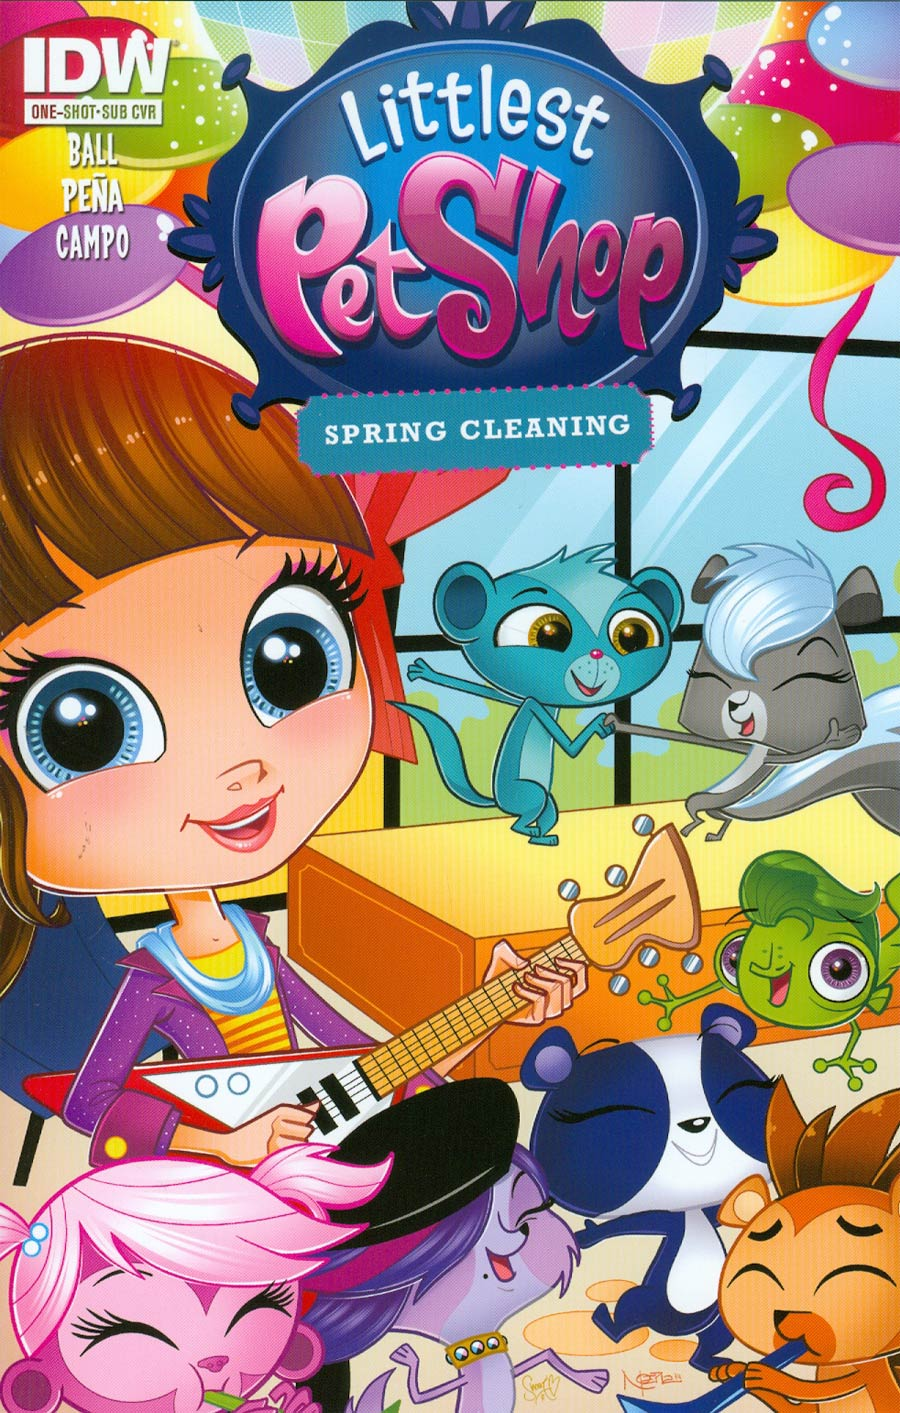 Littlest Pet Shop Spring Cleaning One Shot Cover B Variant Nicanor Pena Subscription Cover